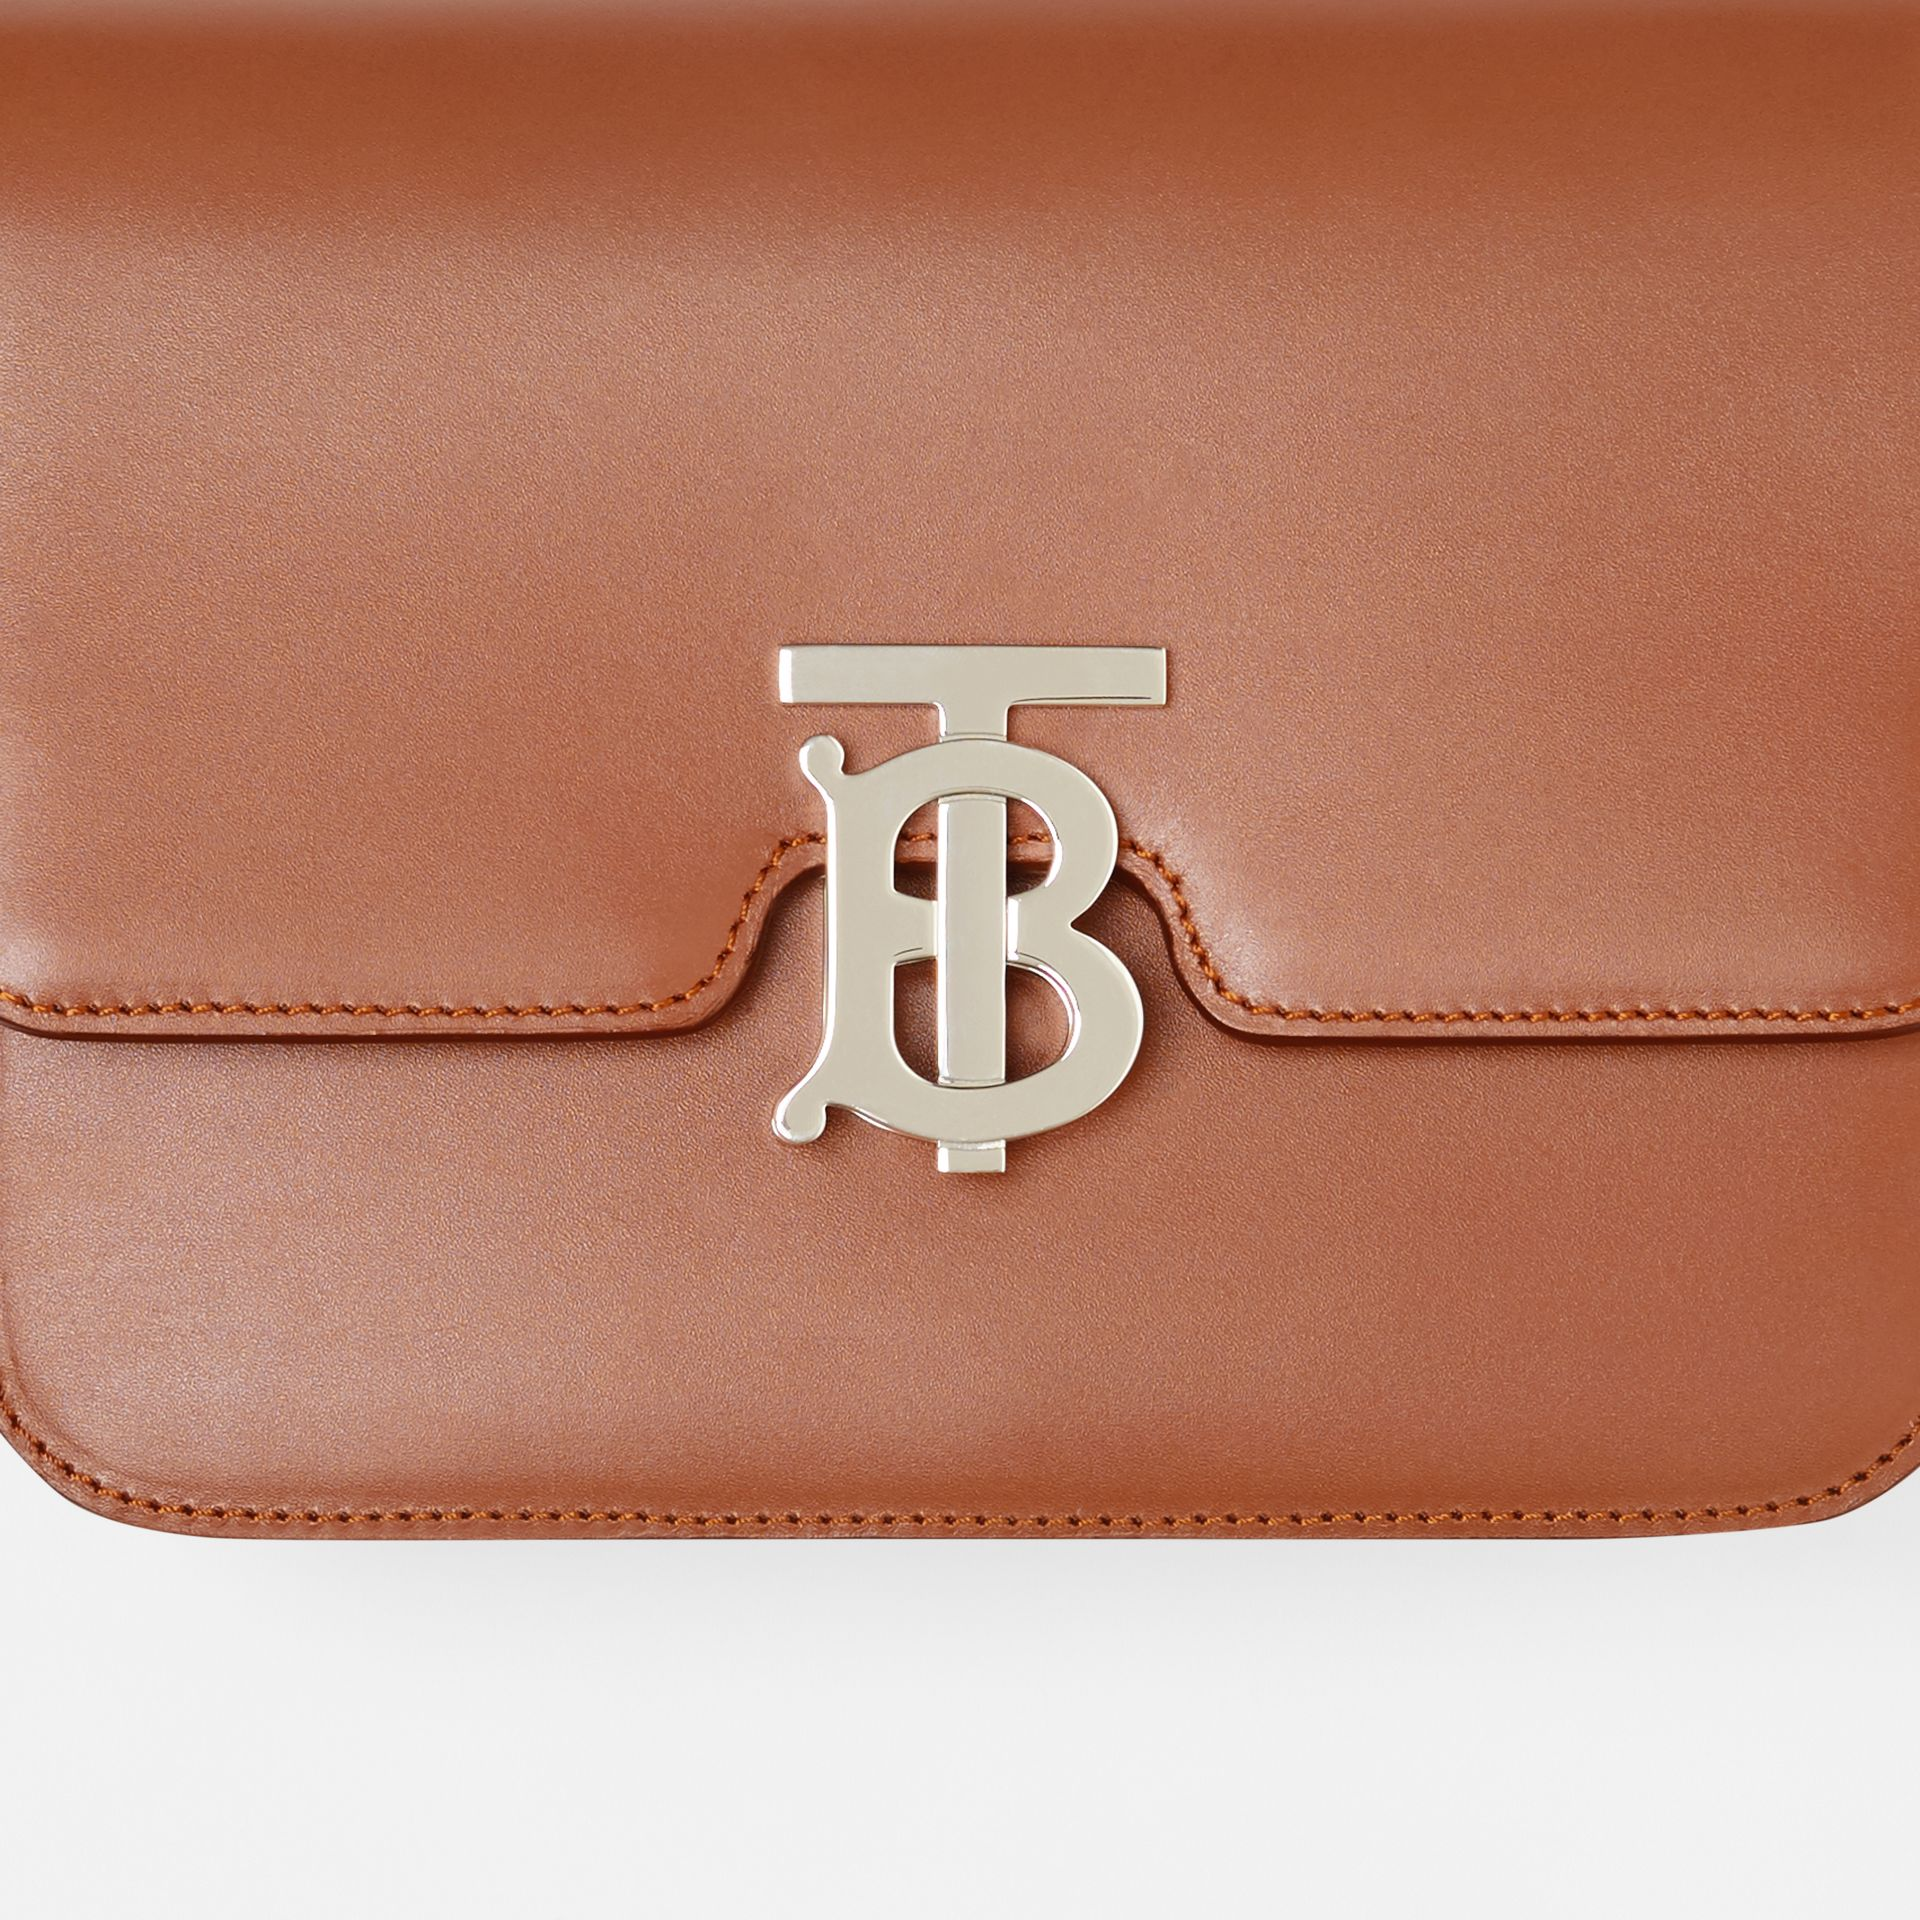 Small Leather TB Bag in Malt Brown - Women | Burberry - gallery image 1